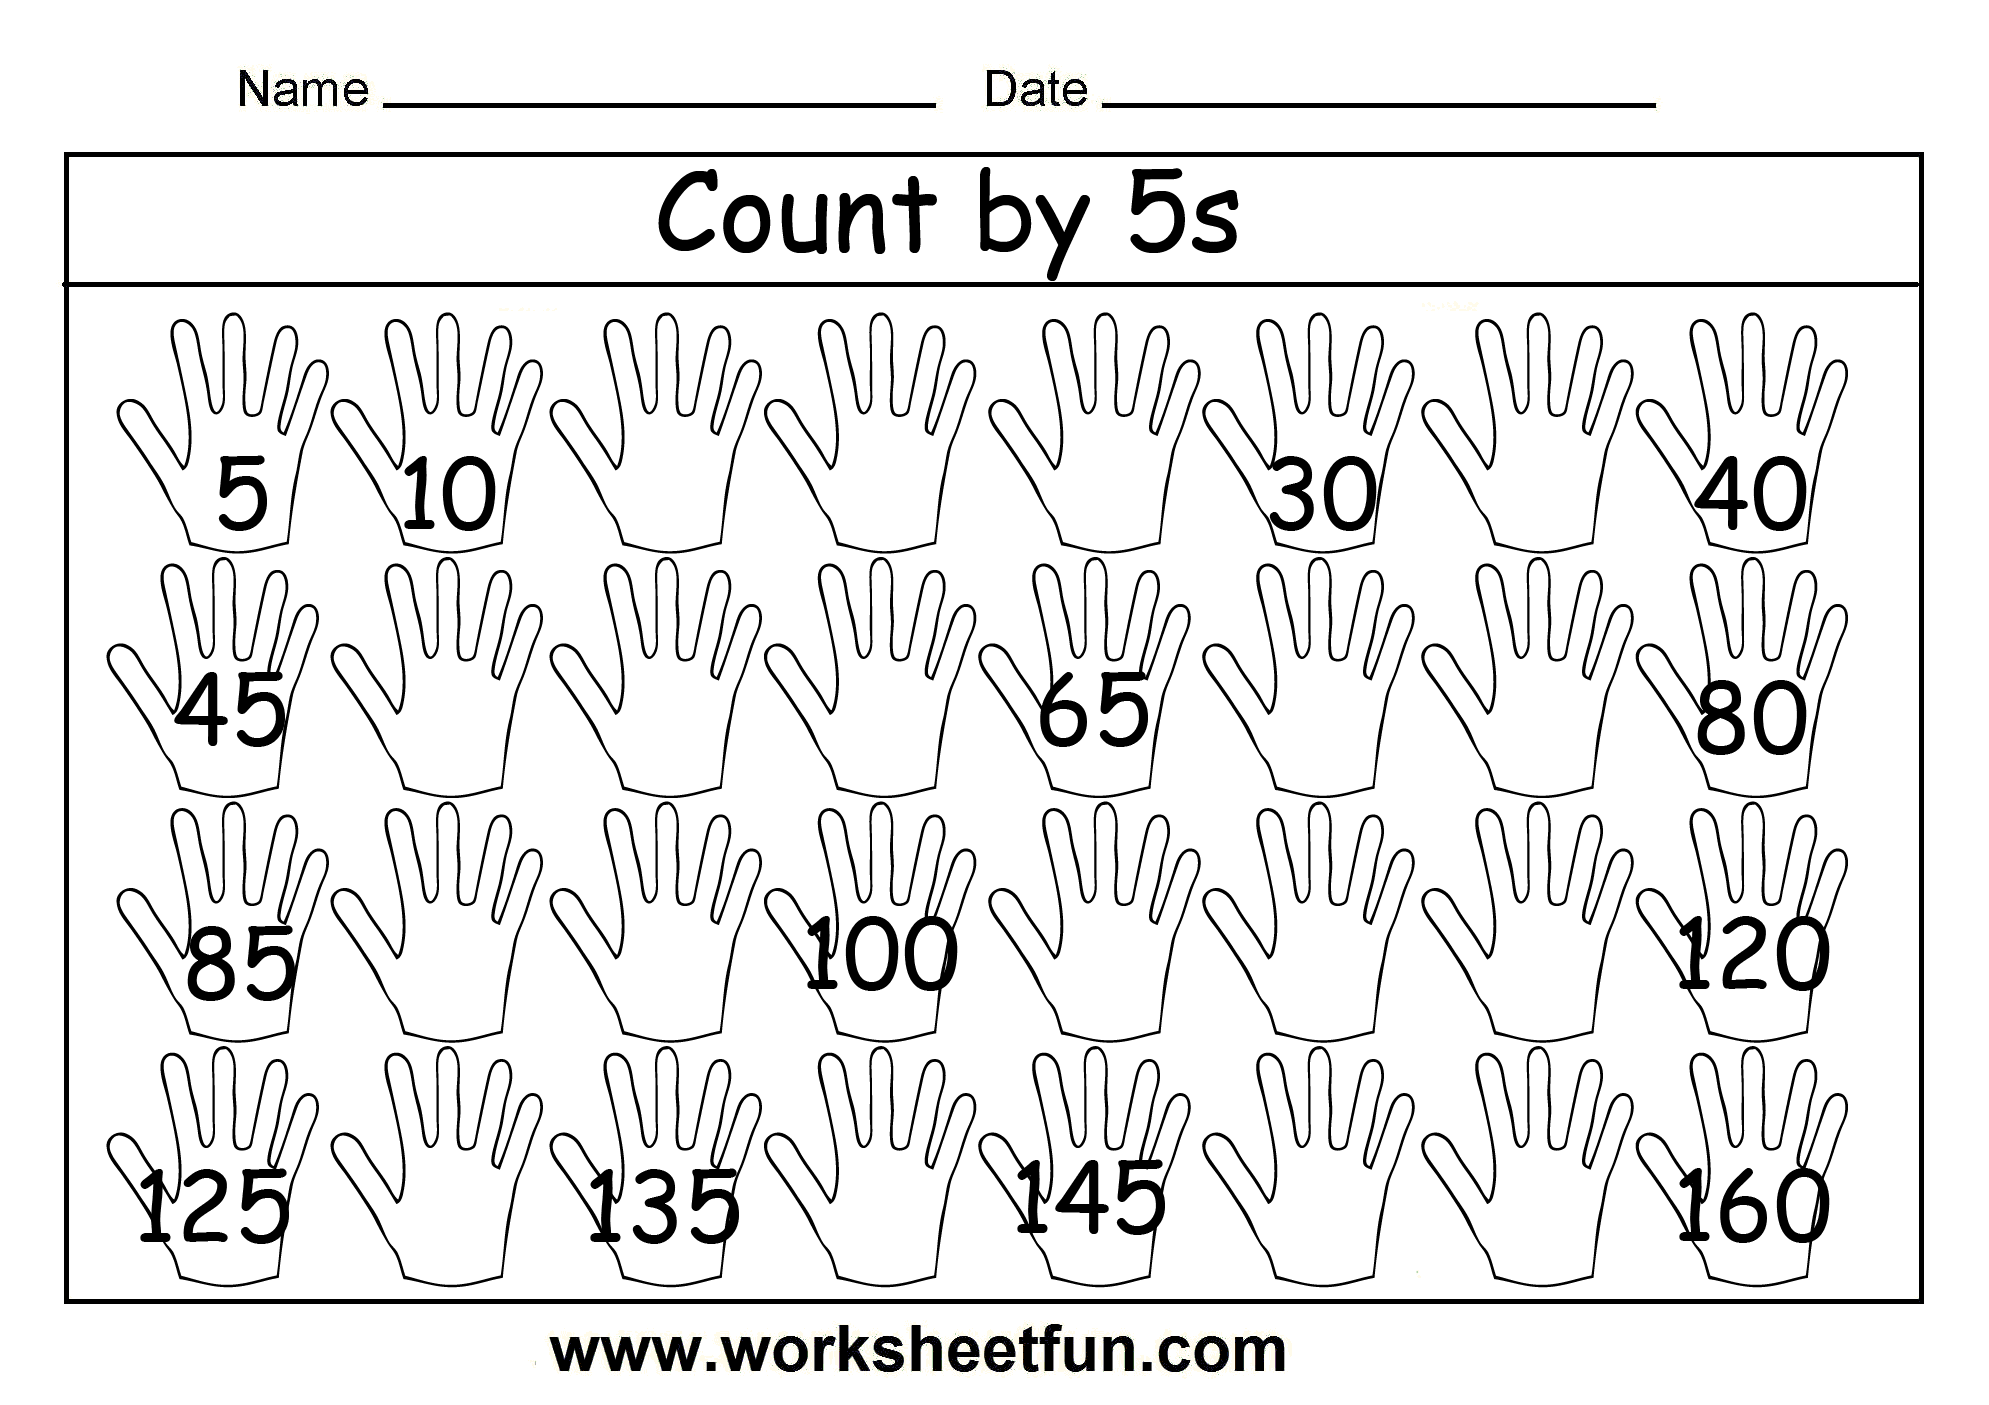 Worksheets Counting By 10 Worksheets For Kindergarten 8 best images of free printable skip counting worksheets by 5s worksheets